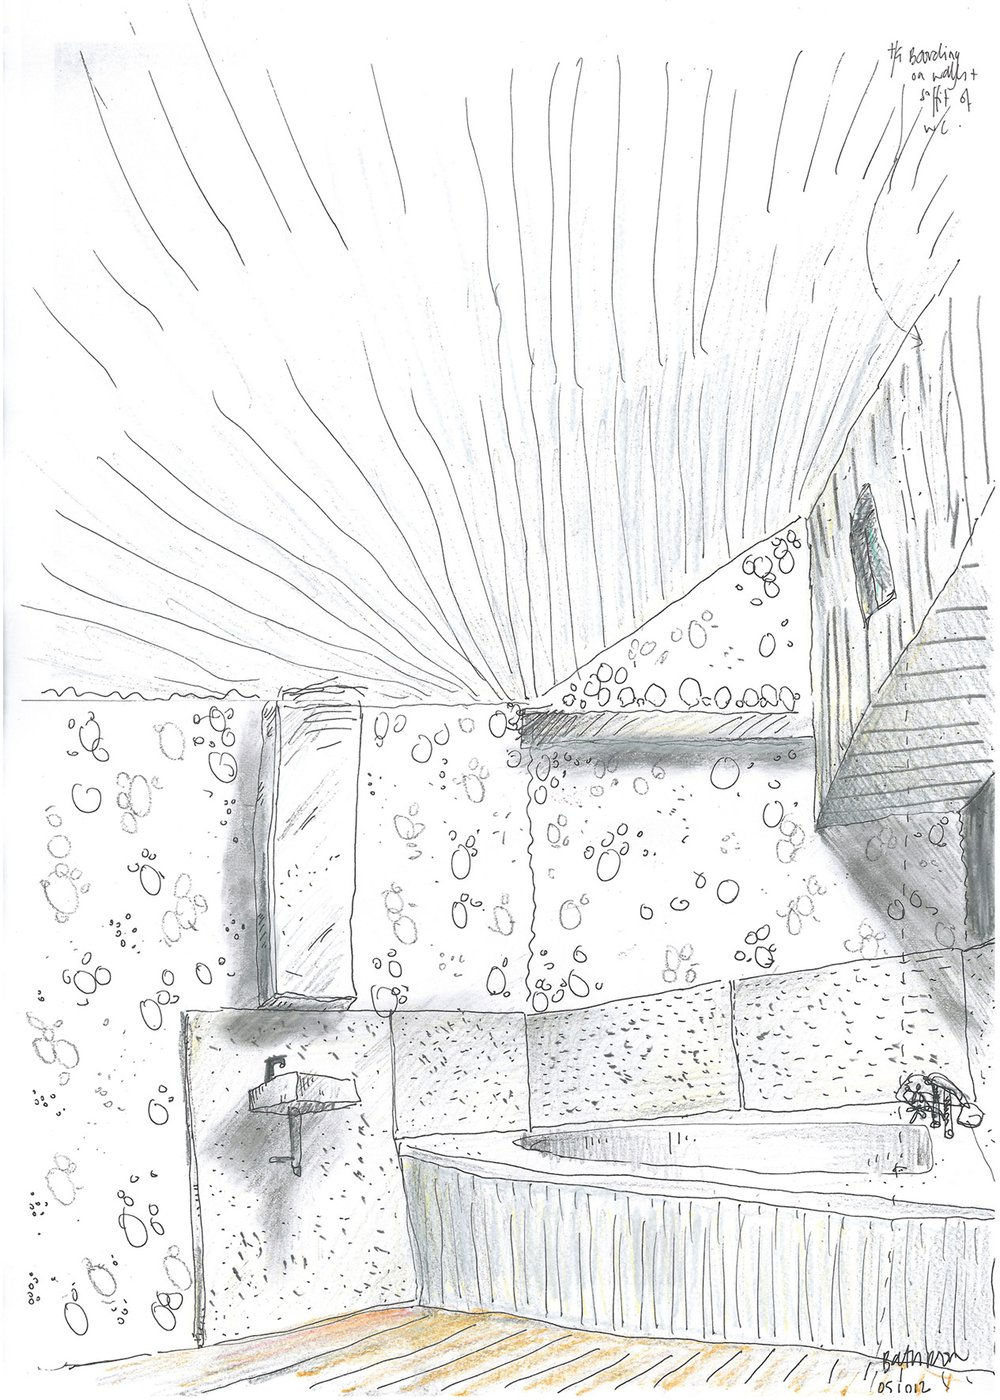 Thursford_Barn_Scrapbook_BATHROOM-WITH-BOARDING-AND-TILES.jpg